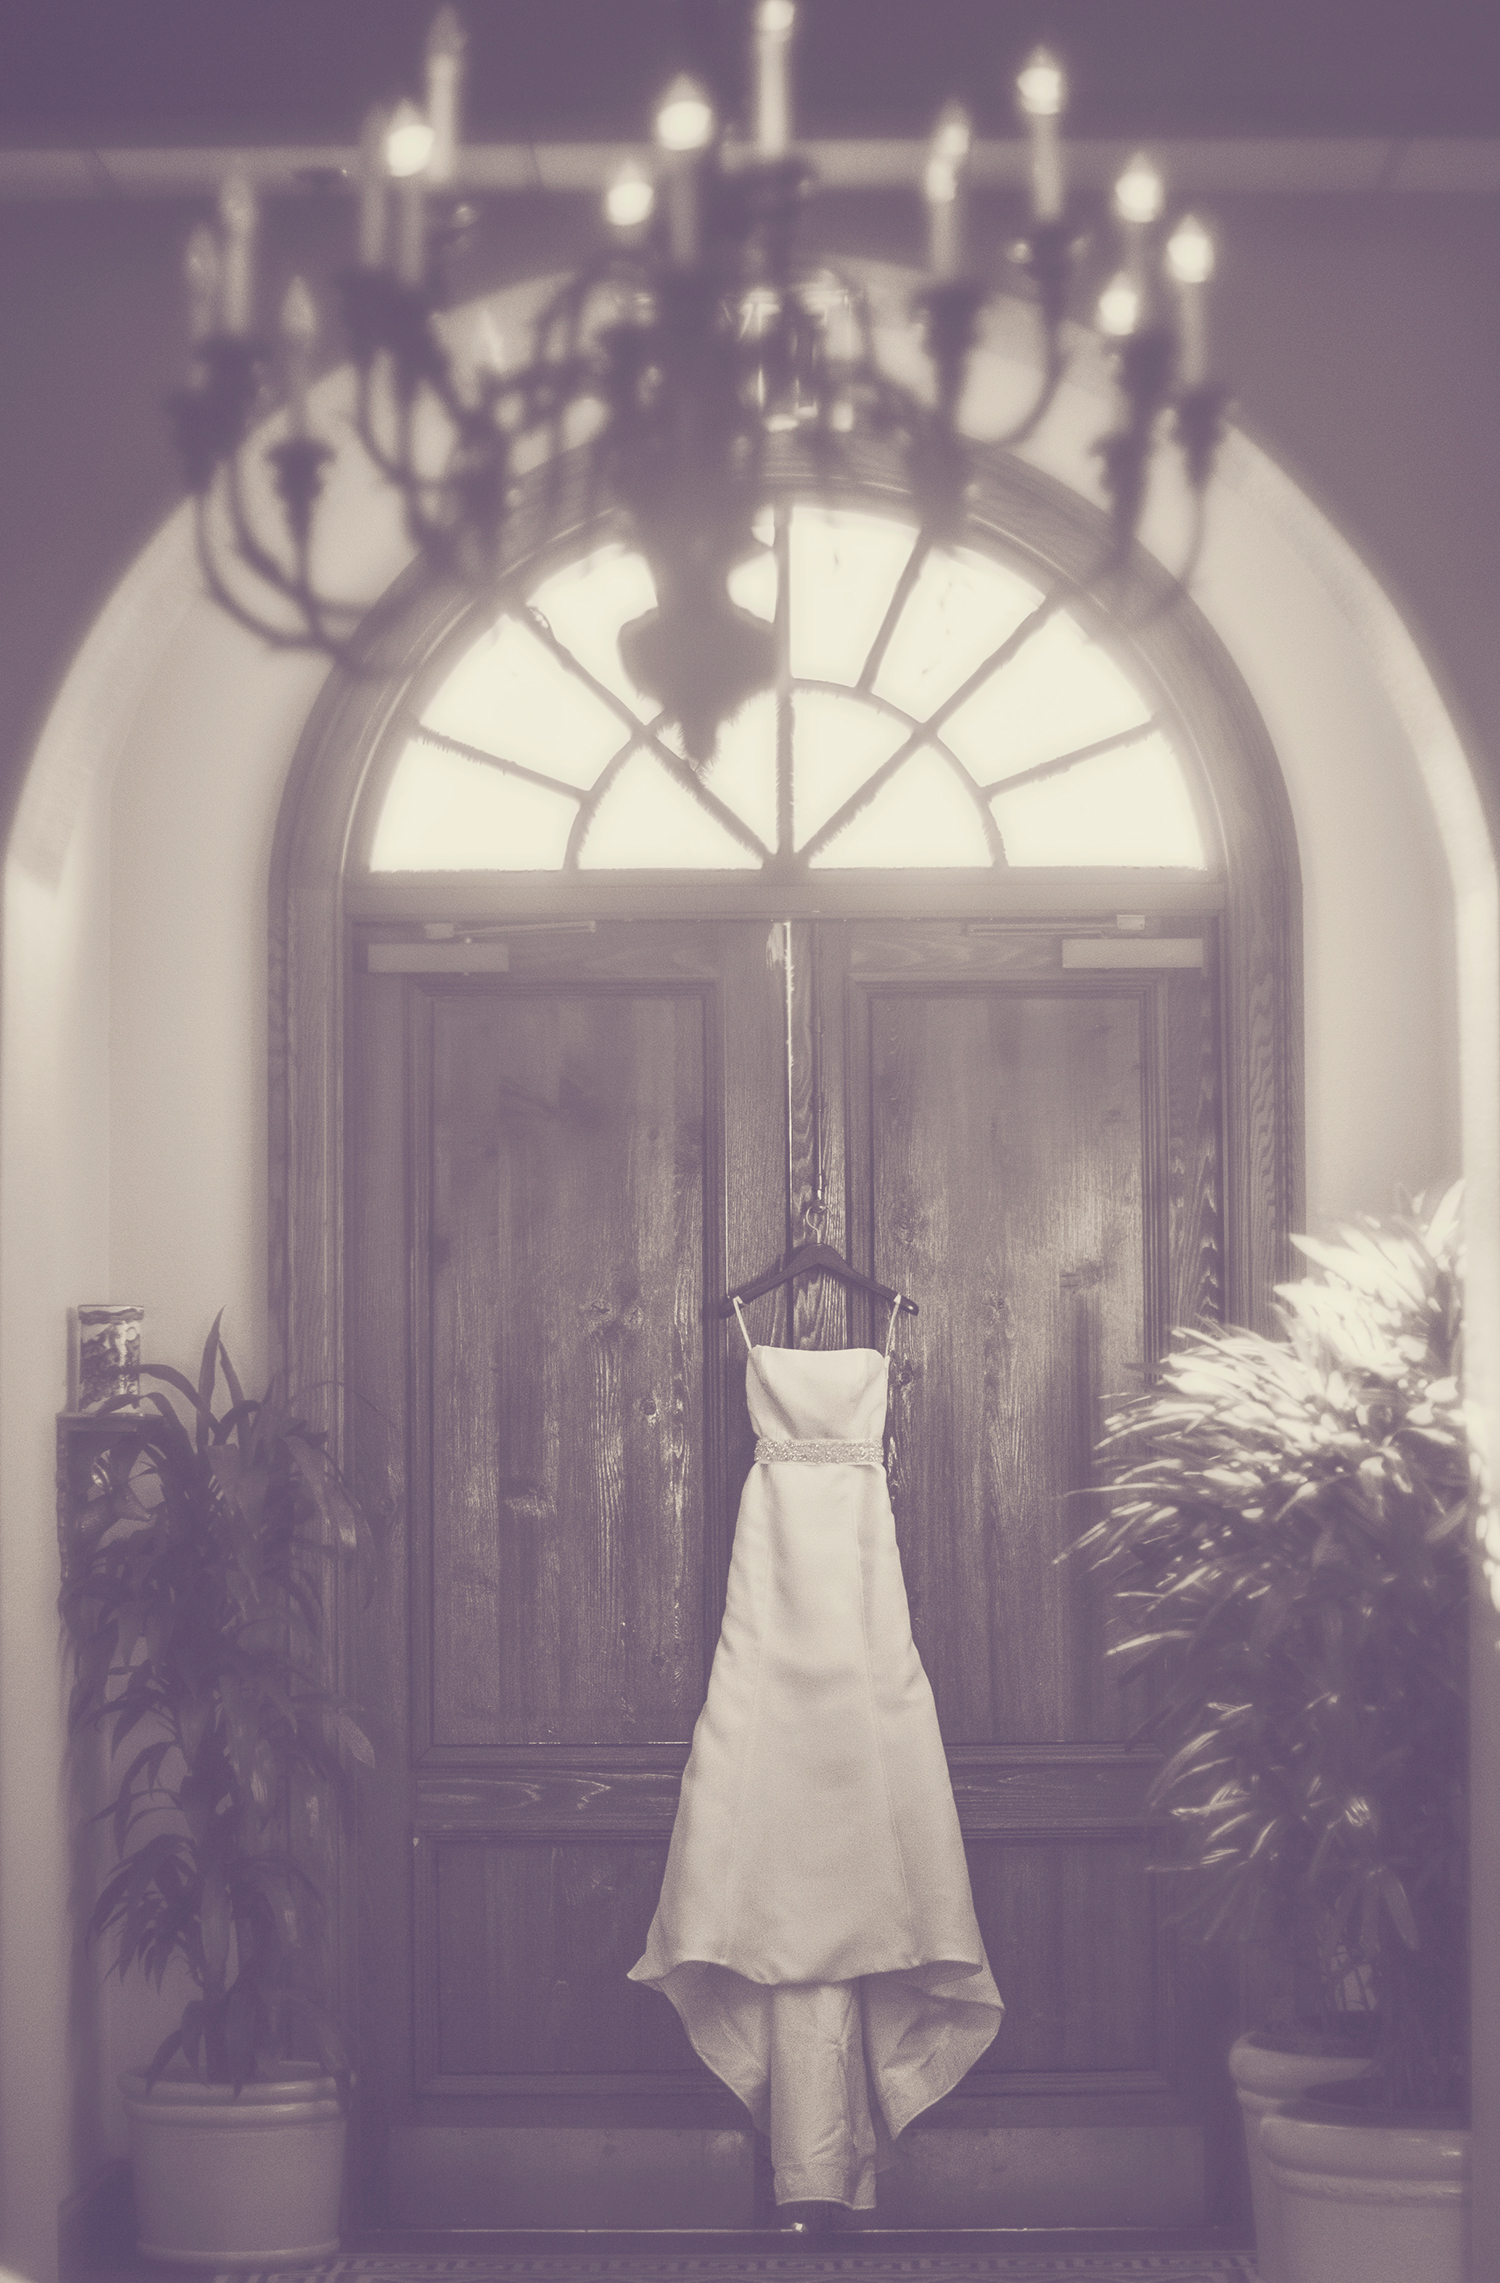 Dena_Rooney_Wedding_Photographer_Poppy_Ridge_002.jpg